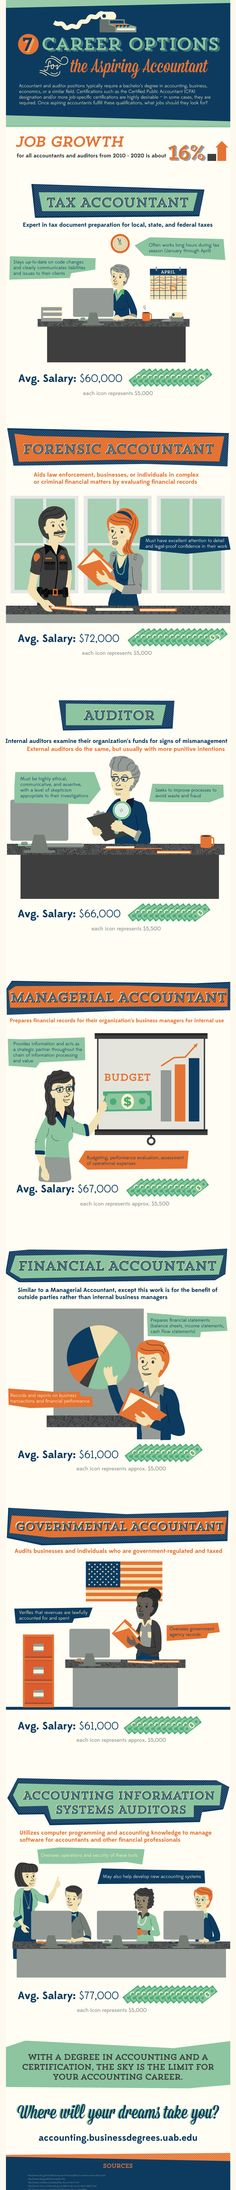 How Much Do Accountants Make? #INFOGRAPHIC